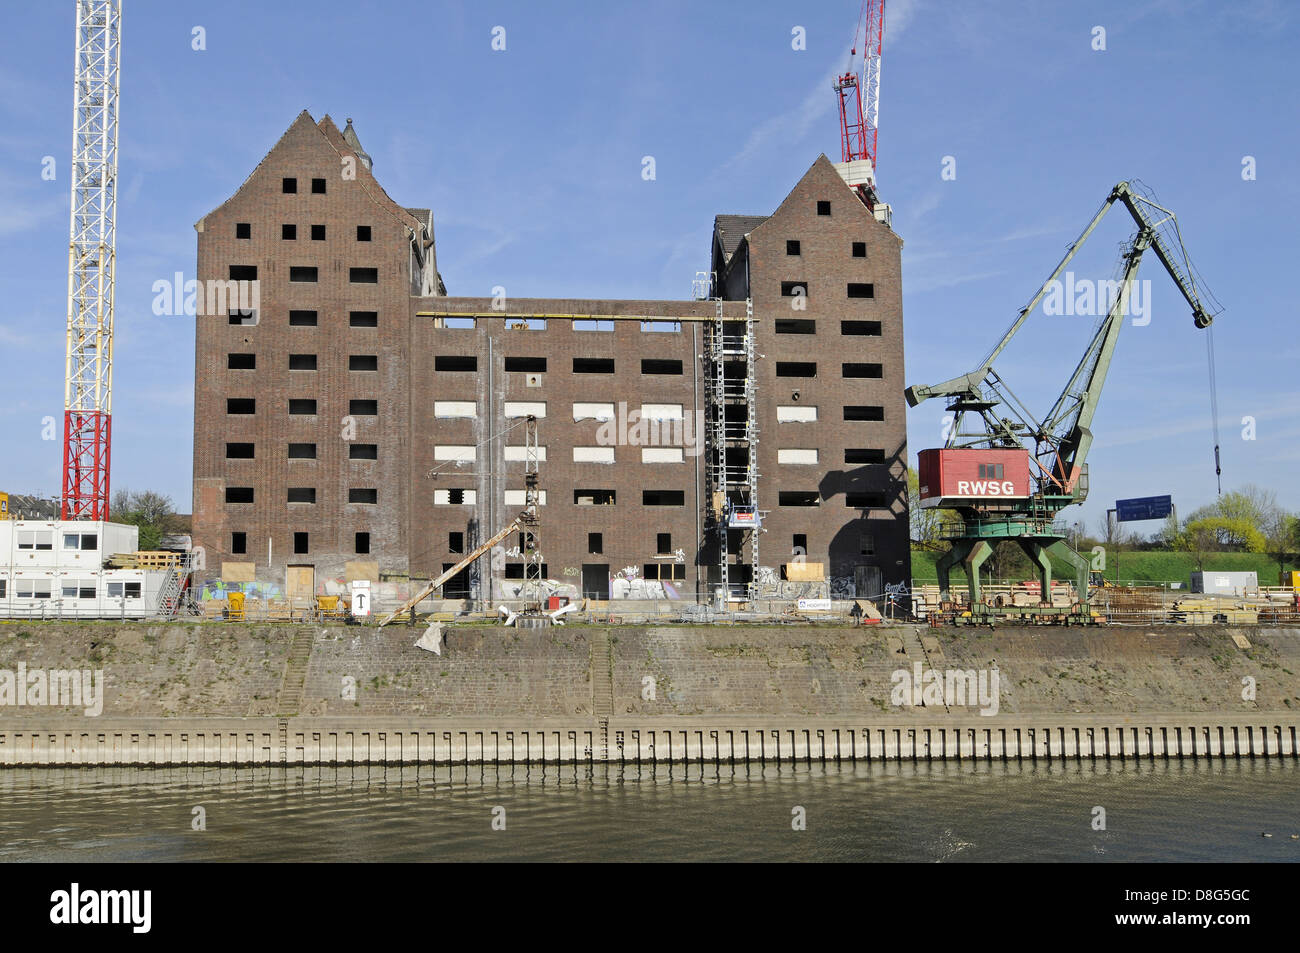 Old RWSG warehouse - Stock Image